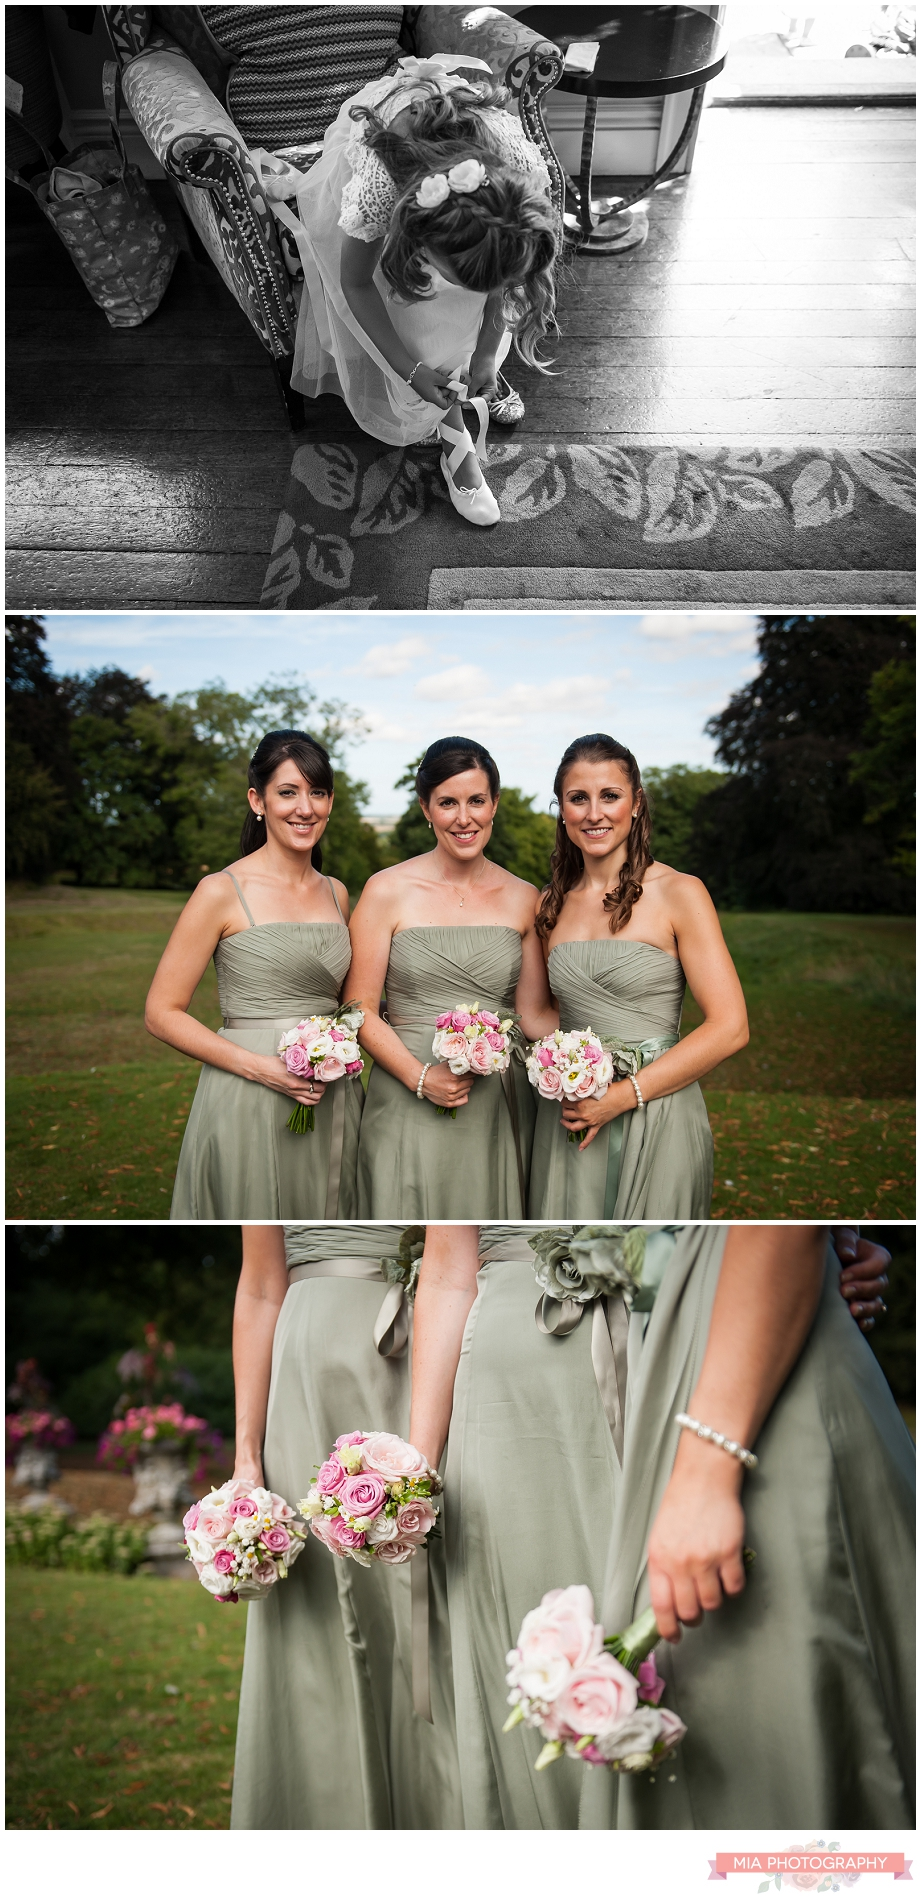 Vintage style bridesmaid dresses in hampshire